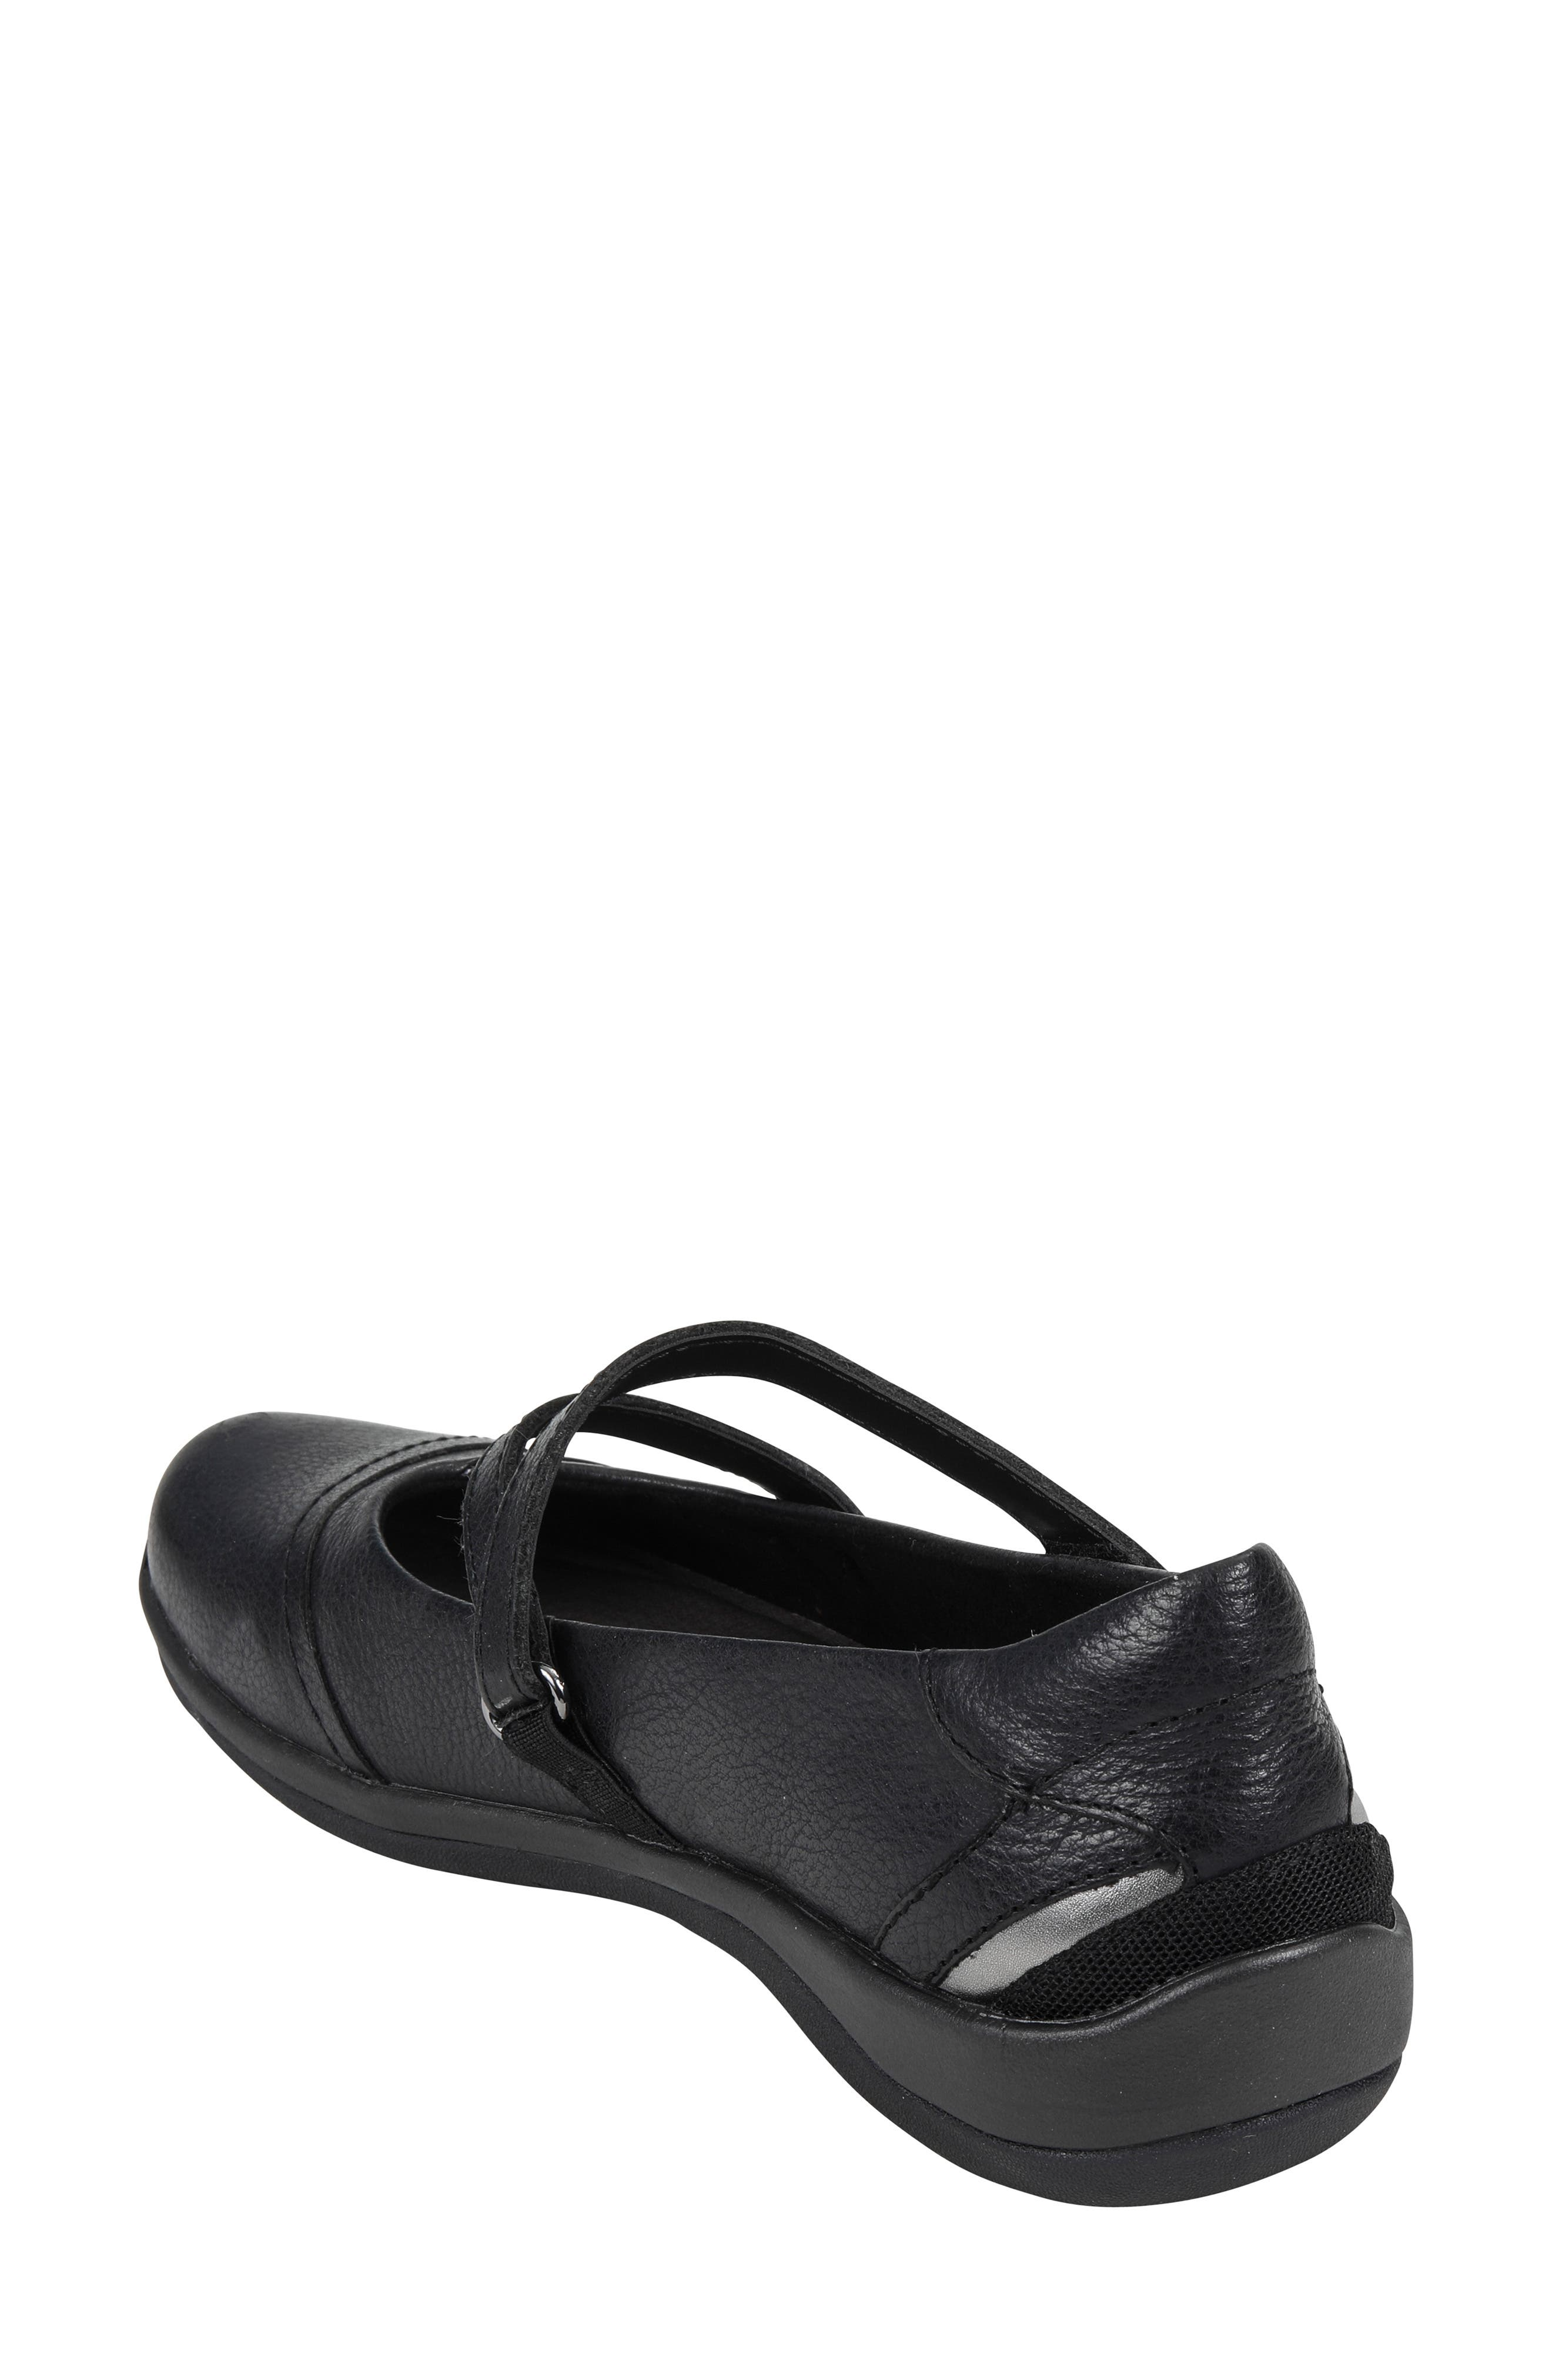 d5506483 Women's Earth® Shoes | Nordstrom